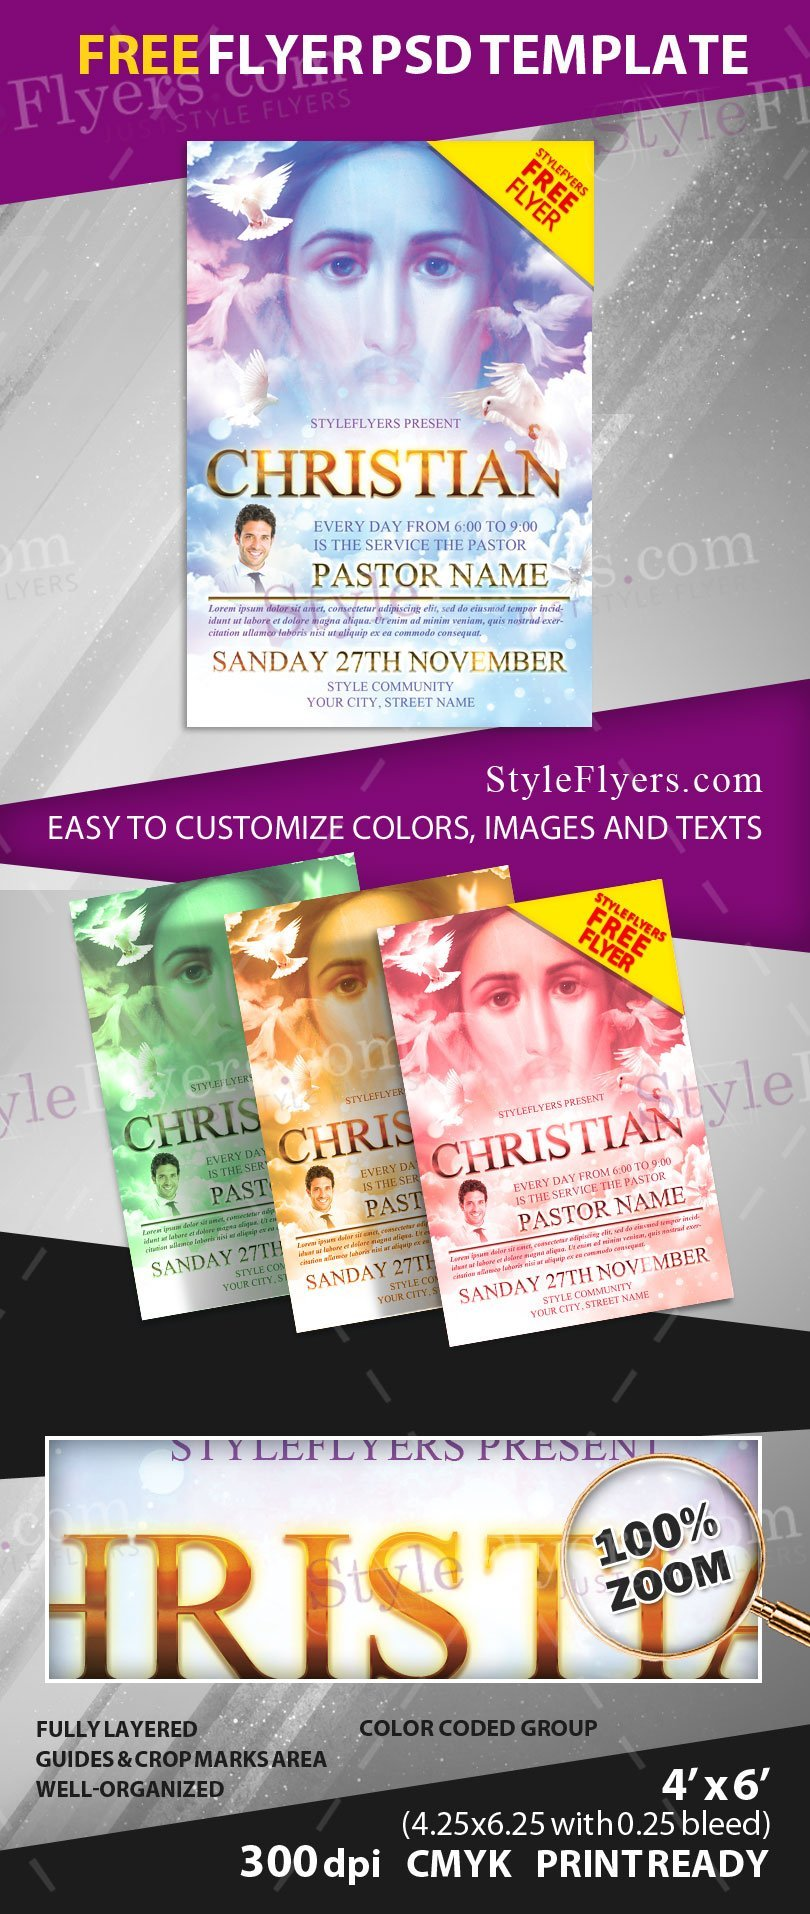 Christian free psd flyer template free download 12801 for Religious flyers template free